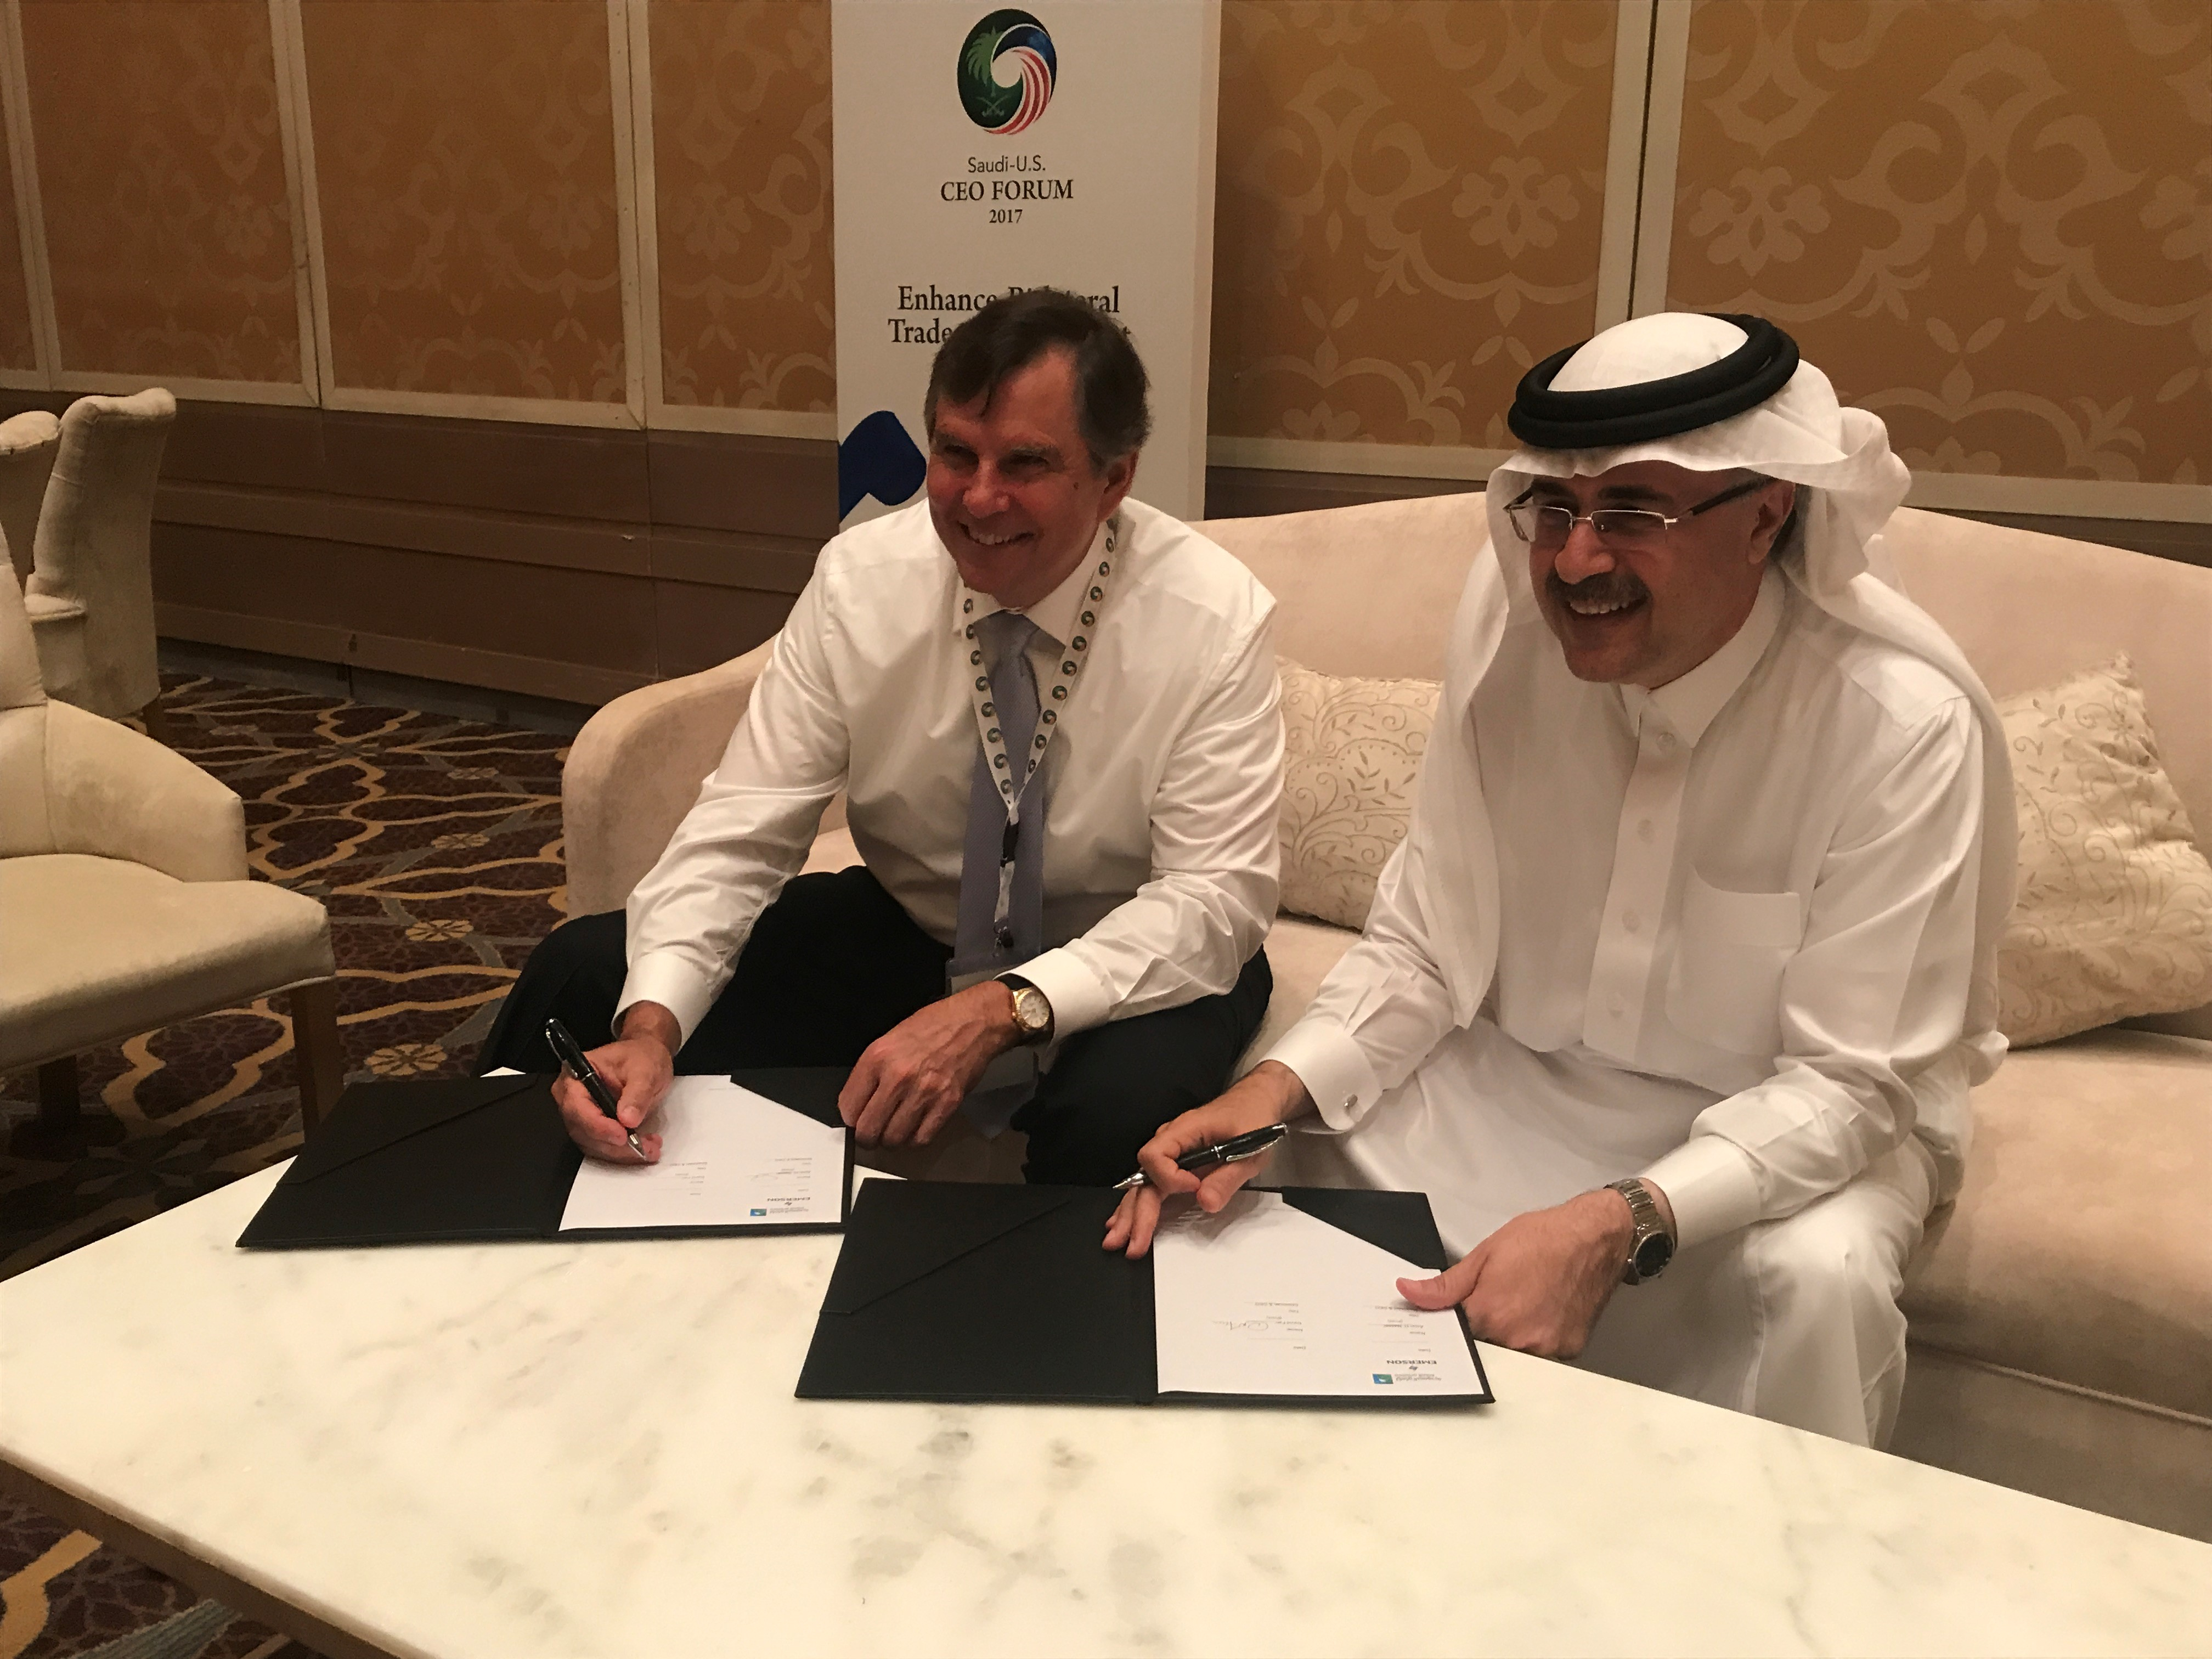 Emerson Signs Agreement to Collaborate on Digital Transformation for